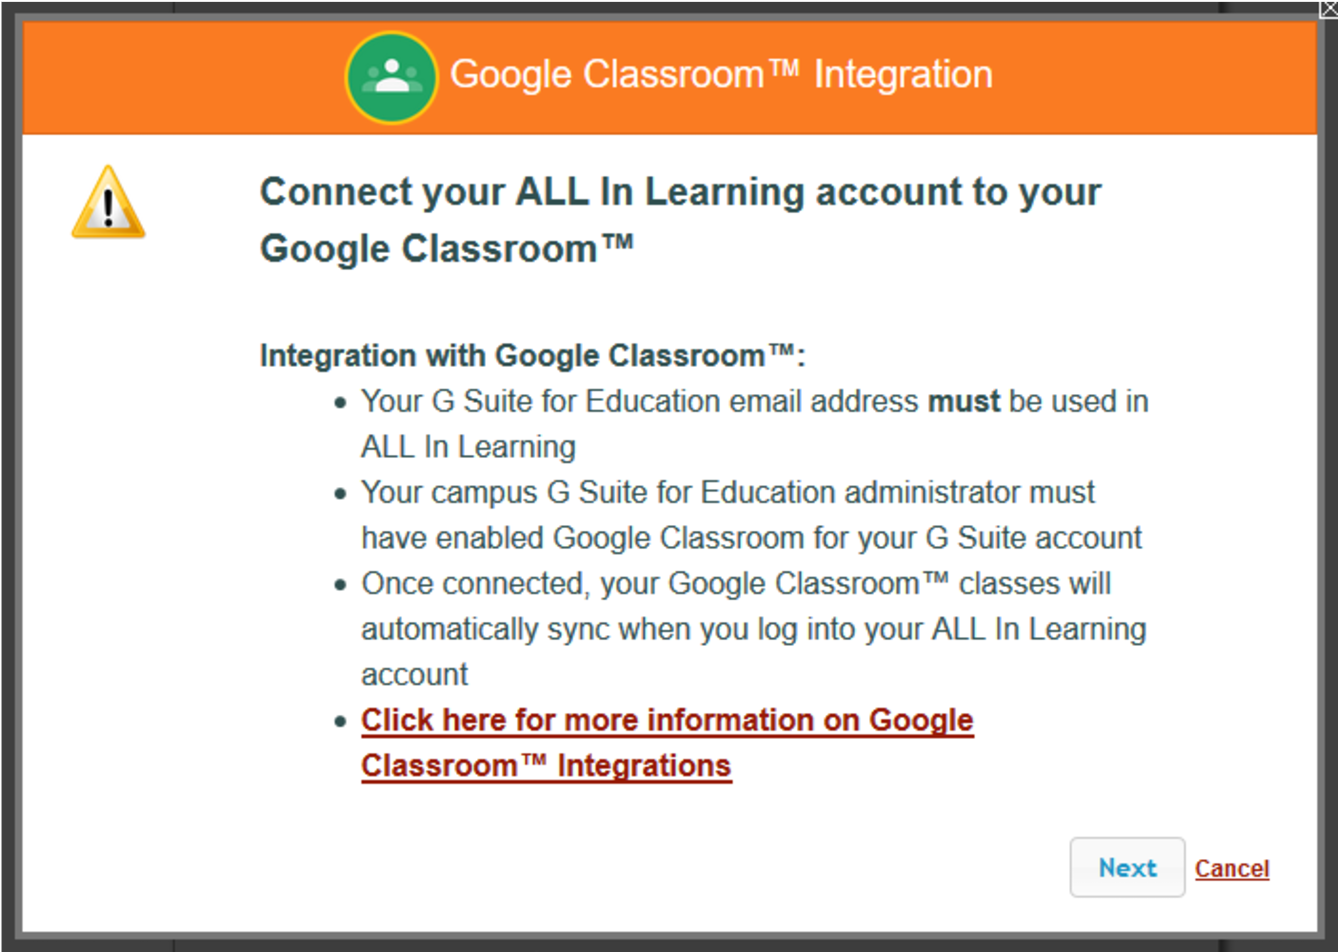 NEW FEATURES & UPGRADES: Google Classroom Integration, Student Non-Proficient by Standard Report, Print Key, Security Improvements, and More!